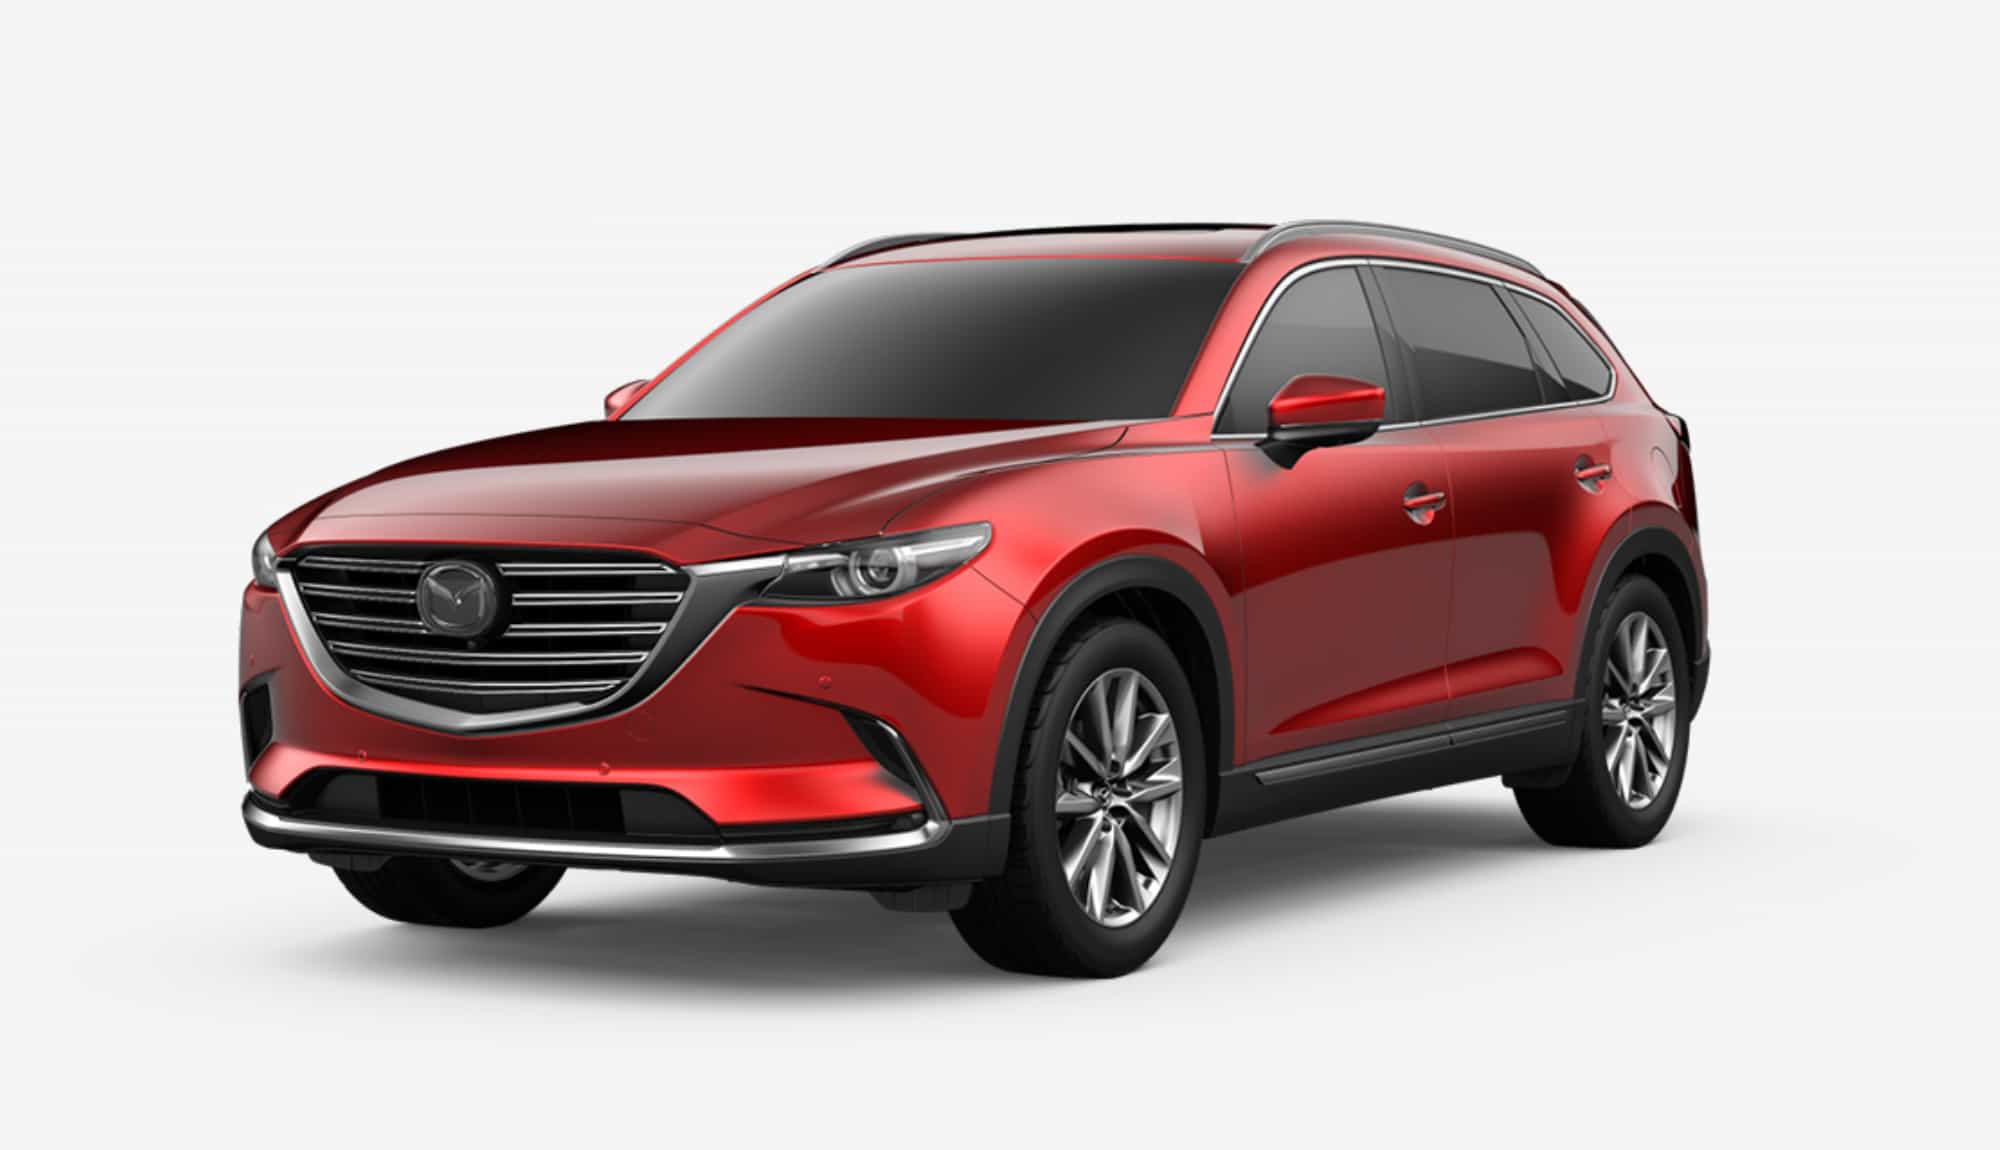 2020 CX-9, Soul Red Crystal Metallic